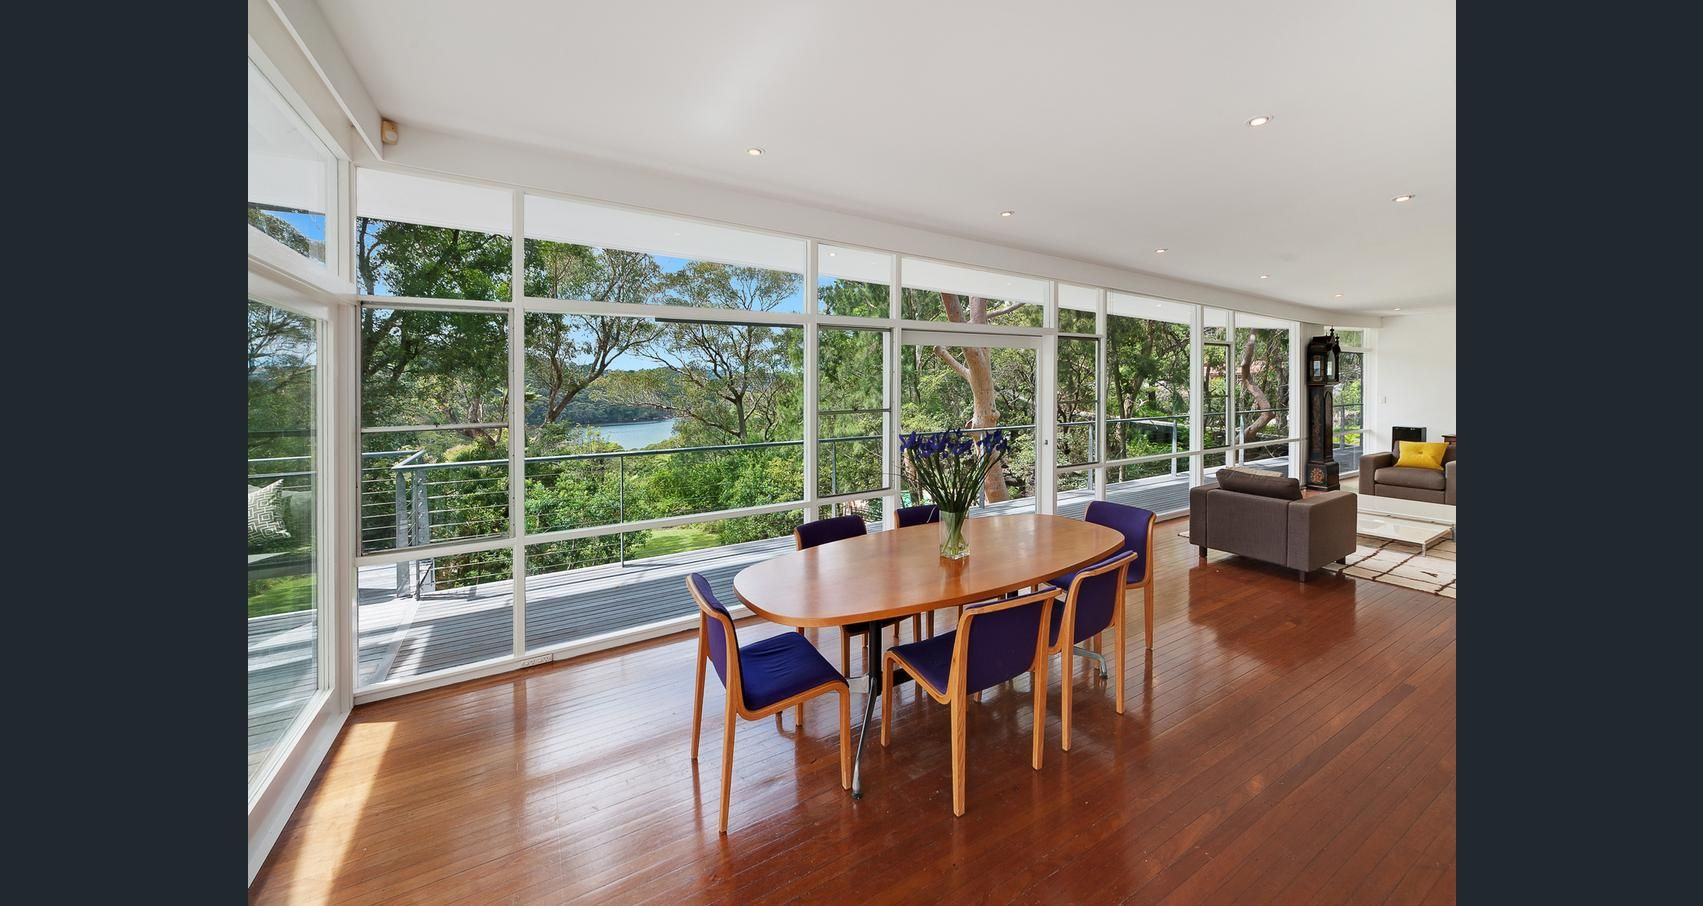 15 The Quarterdeck Middle Cove NSW 2068 - House for Sale #124988838 - realestate.com.au